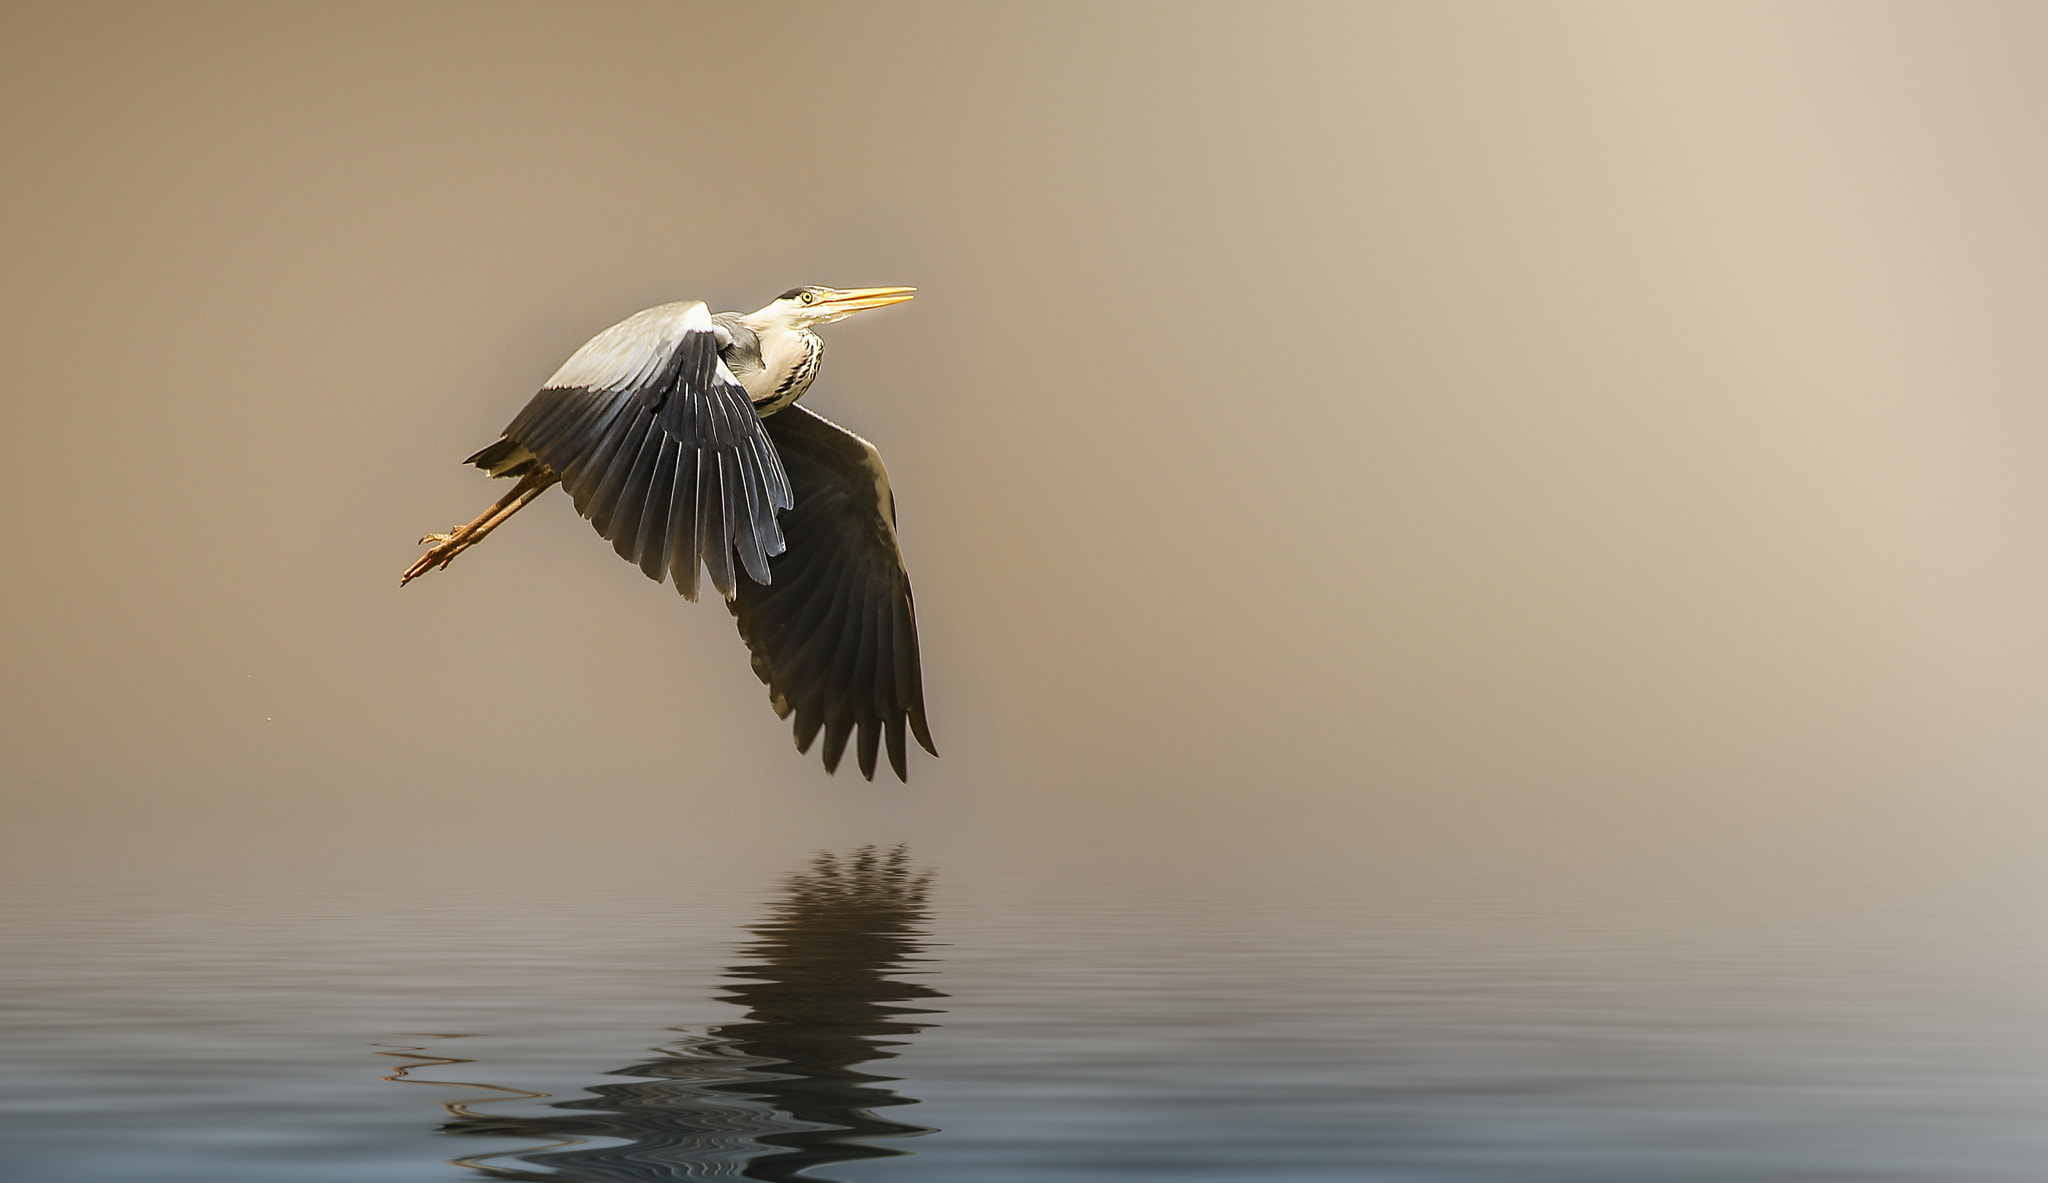 Photograph solo by Detlef Knapp on 500px